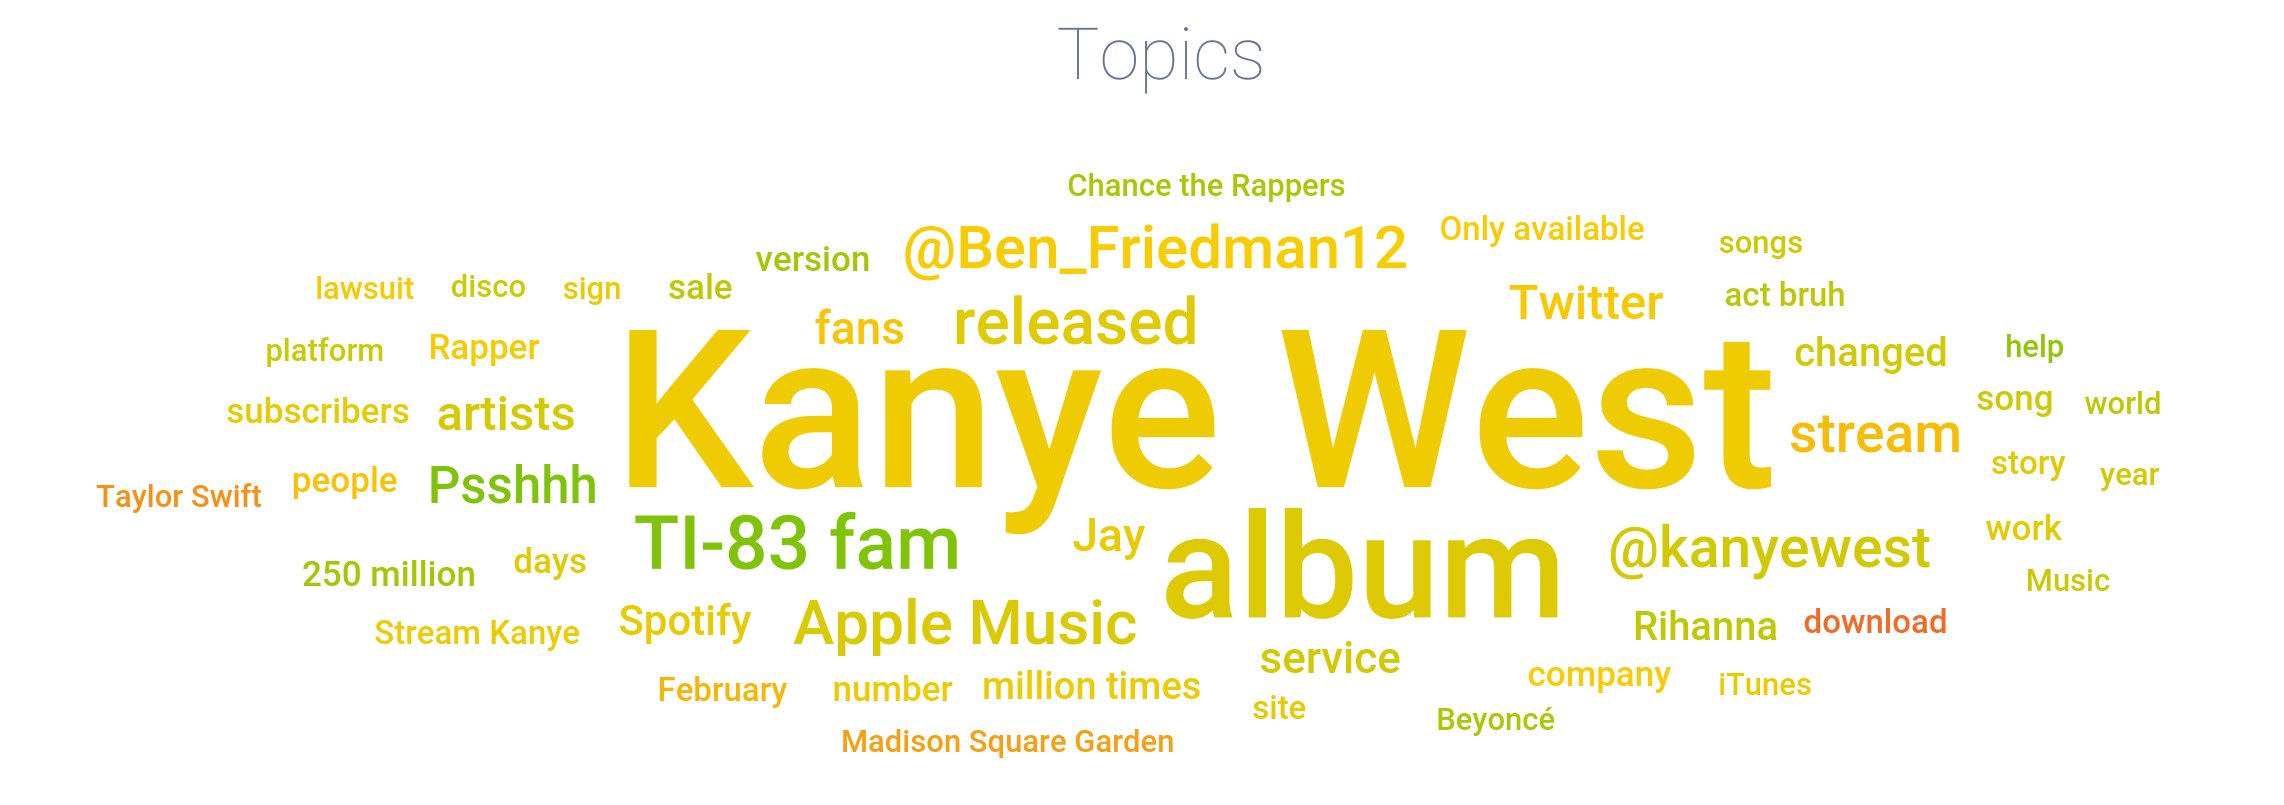 the-life-of-pablo-or-tlop-or-n_topics.png